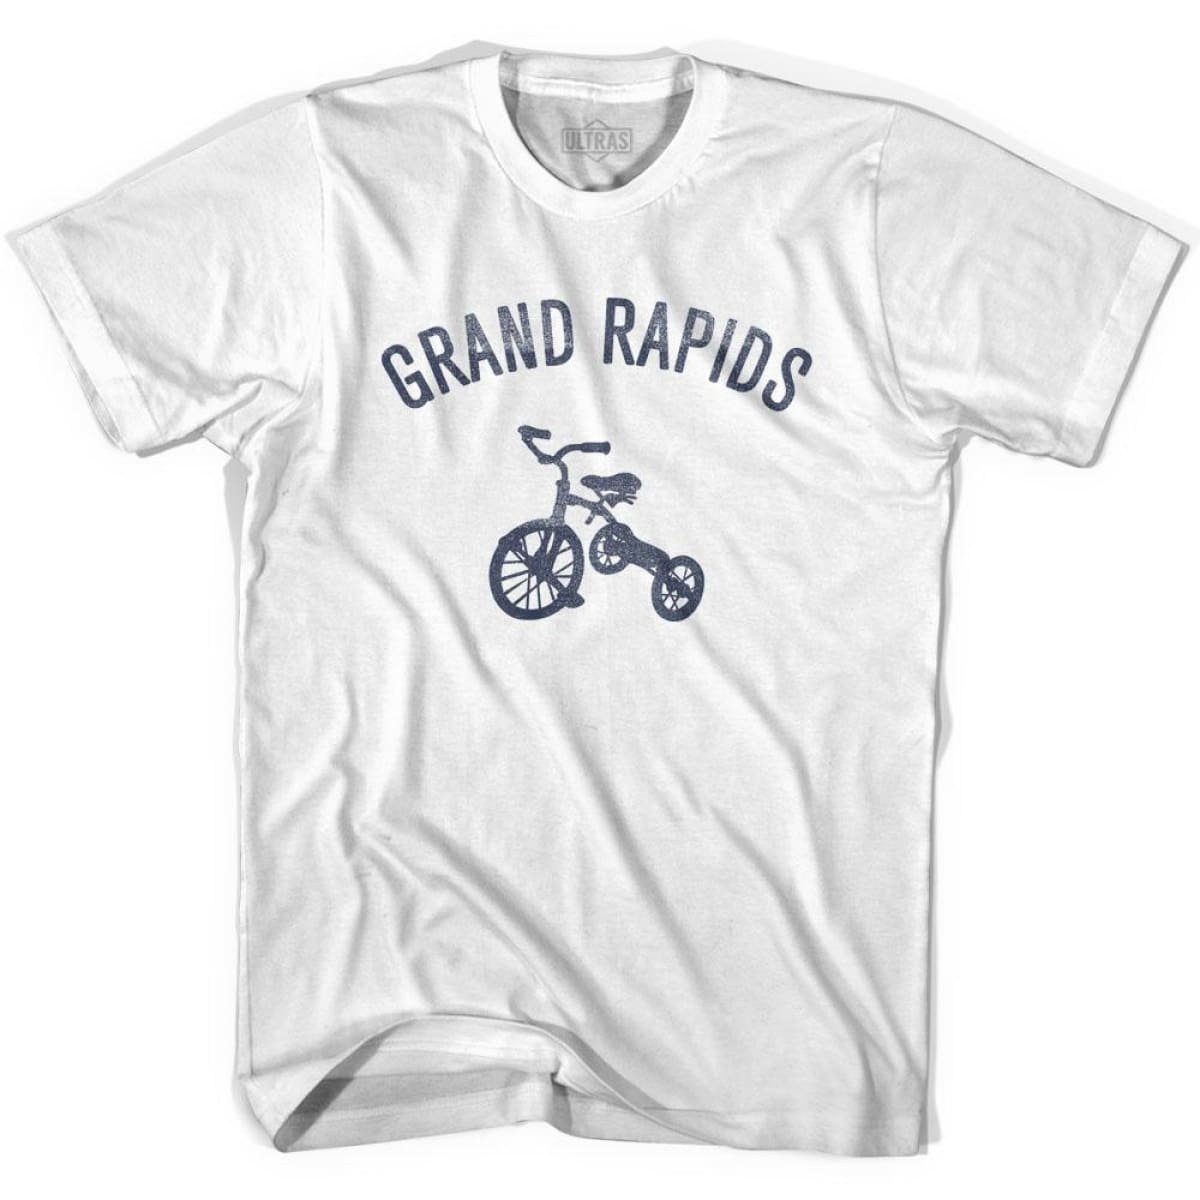 Grand Rapids City Tricycle Youth Cotton T-shirt - Tricycle City